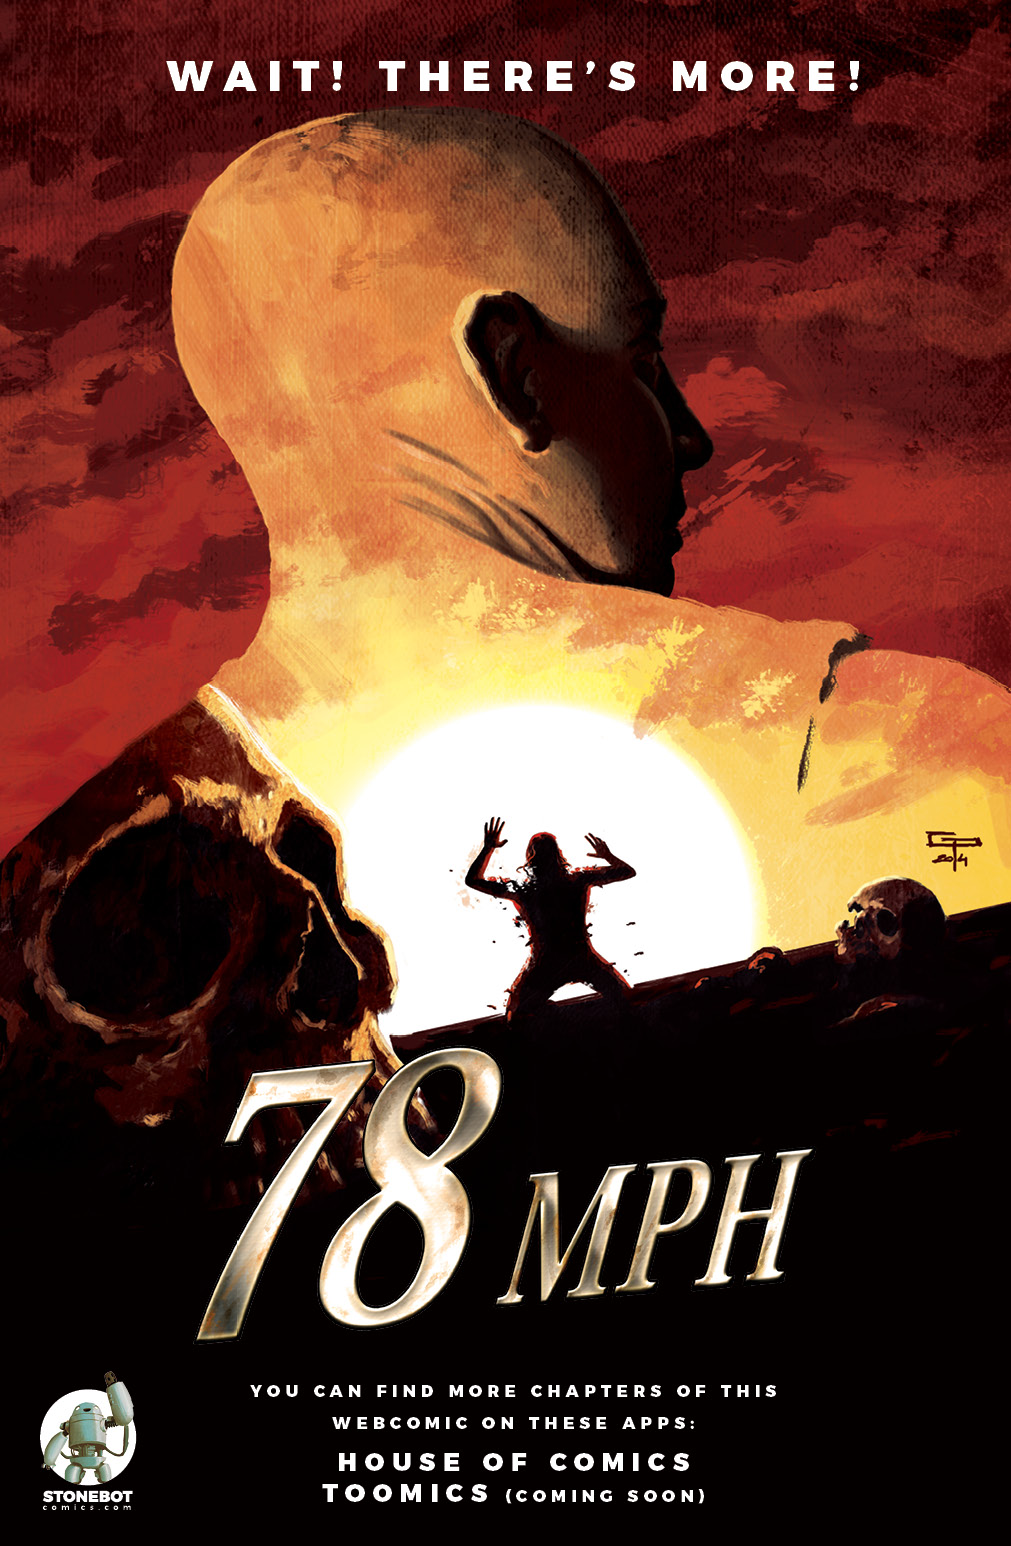 78 MPH Chapter #1 Page #25